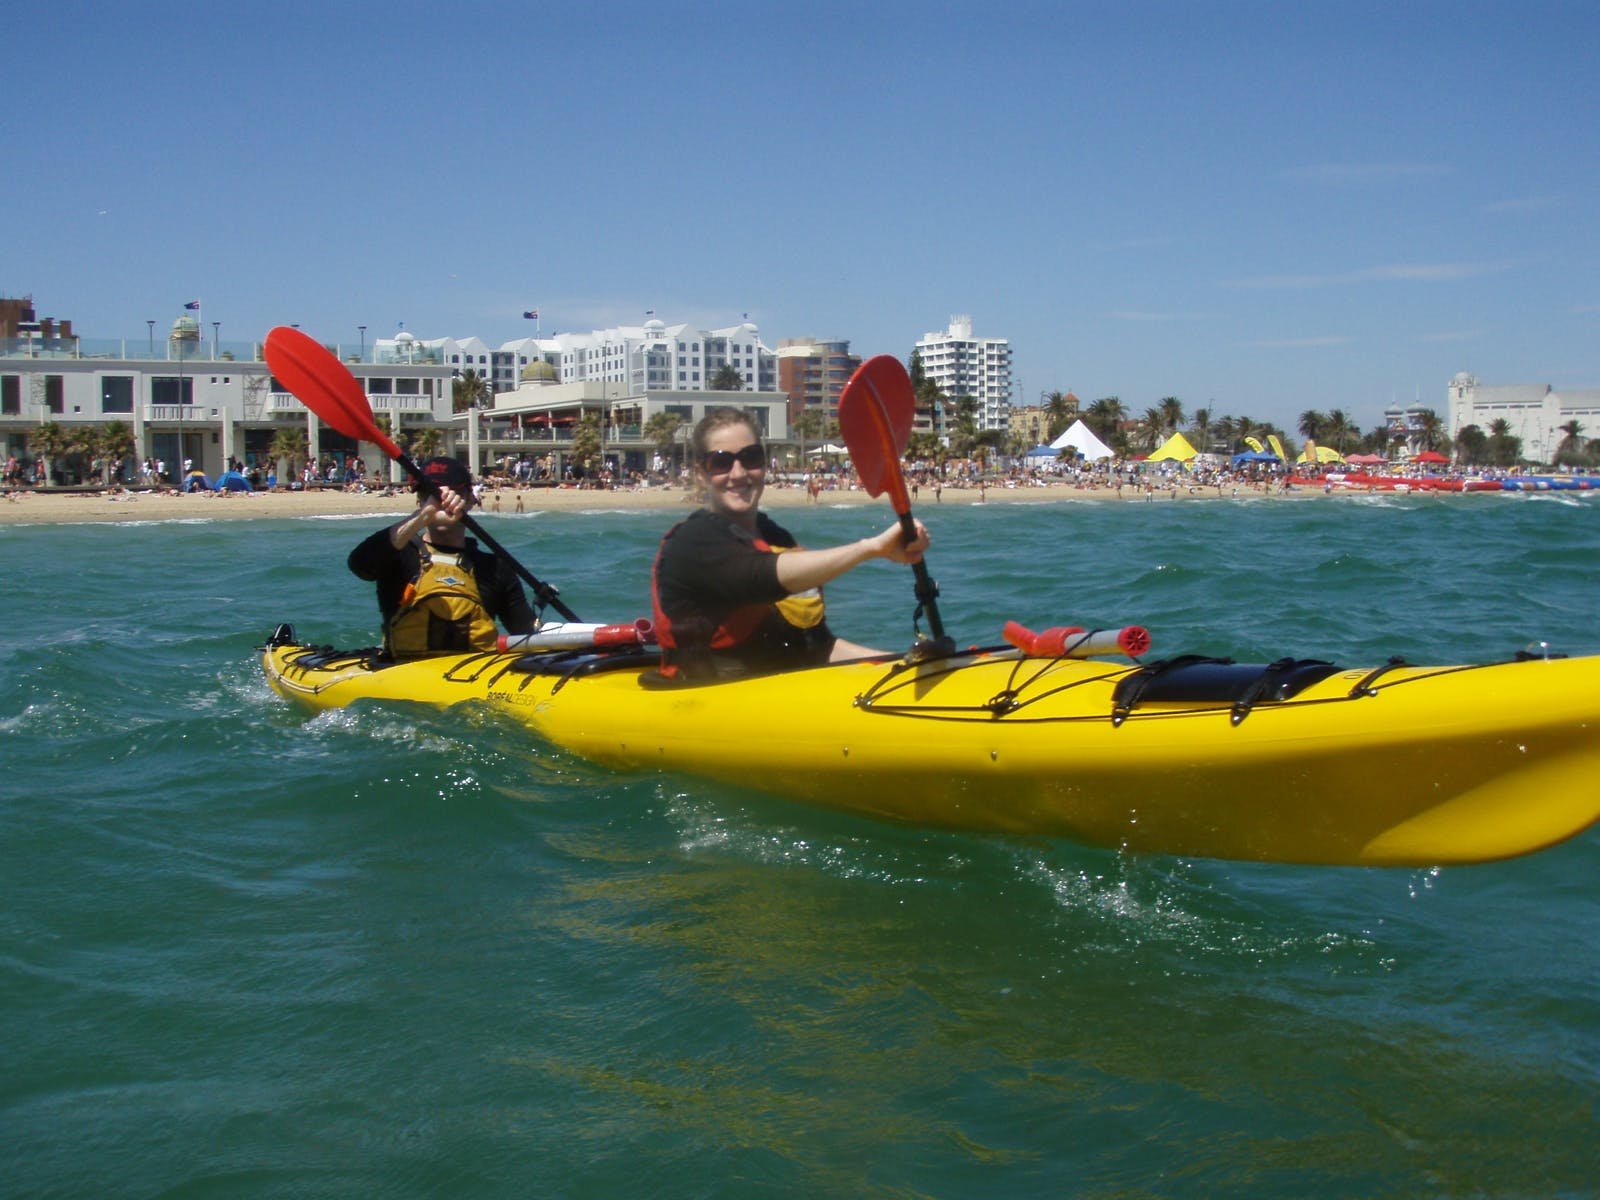 Sea Kayak Half Day St Kilda - Skilda baths in the back ground